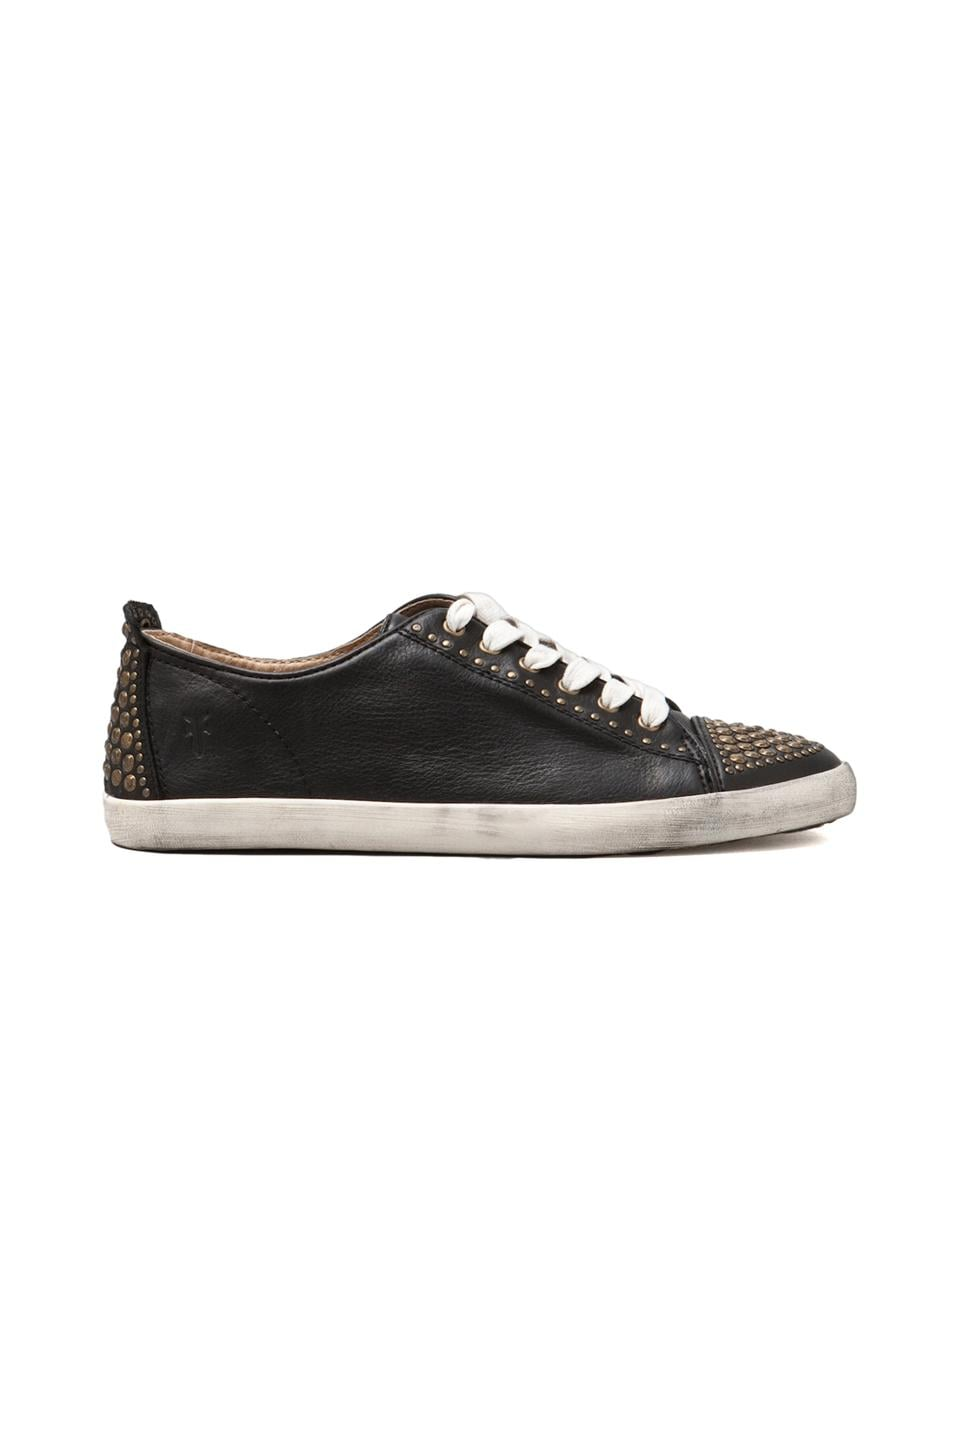 Frye Kira Studded Low Top in Black